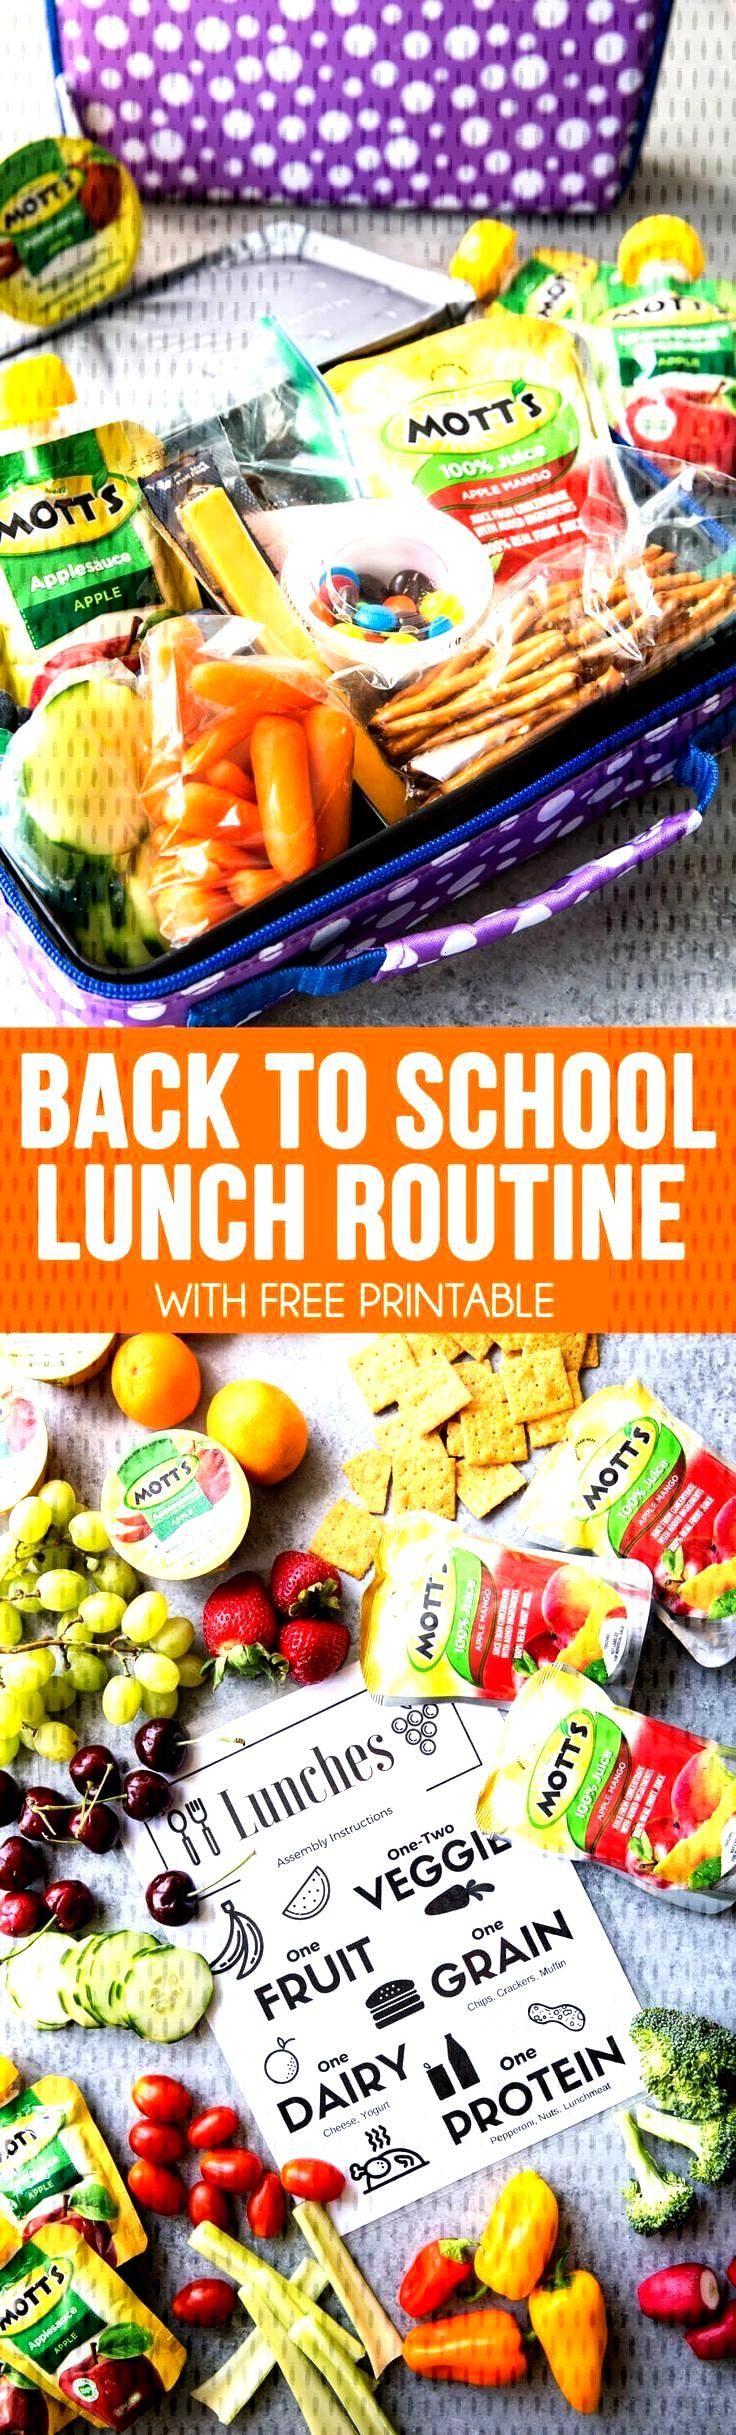 Back to School Lunches,  Back to School Lunches,